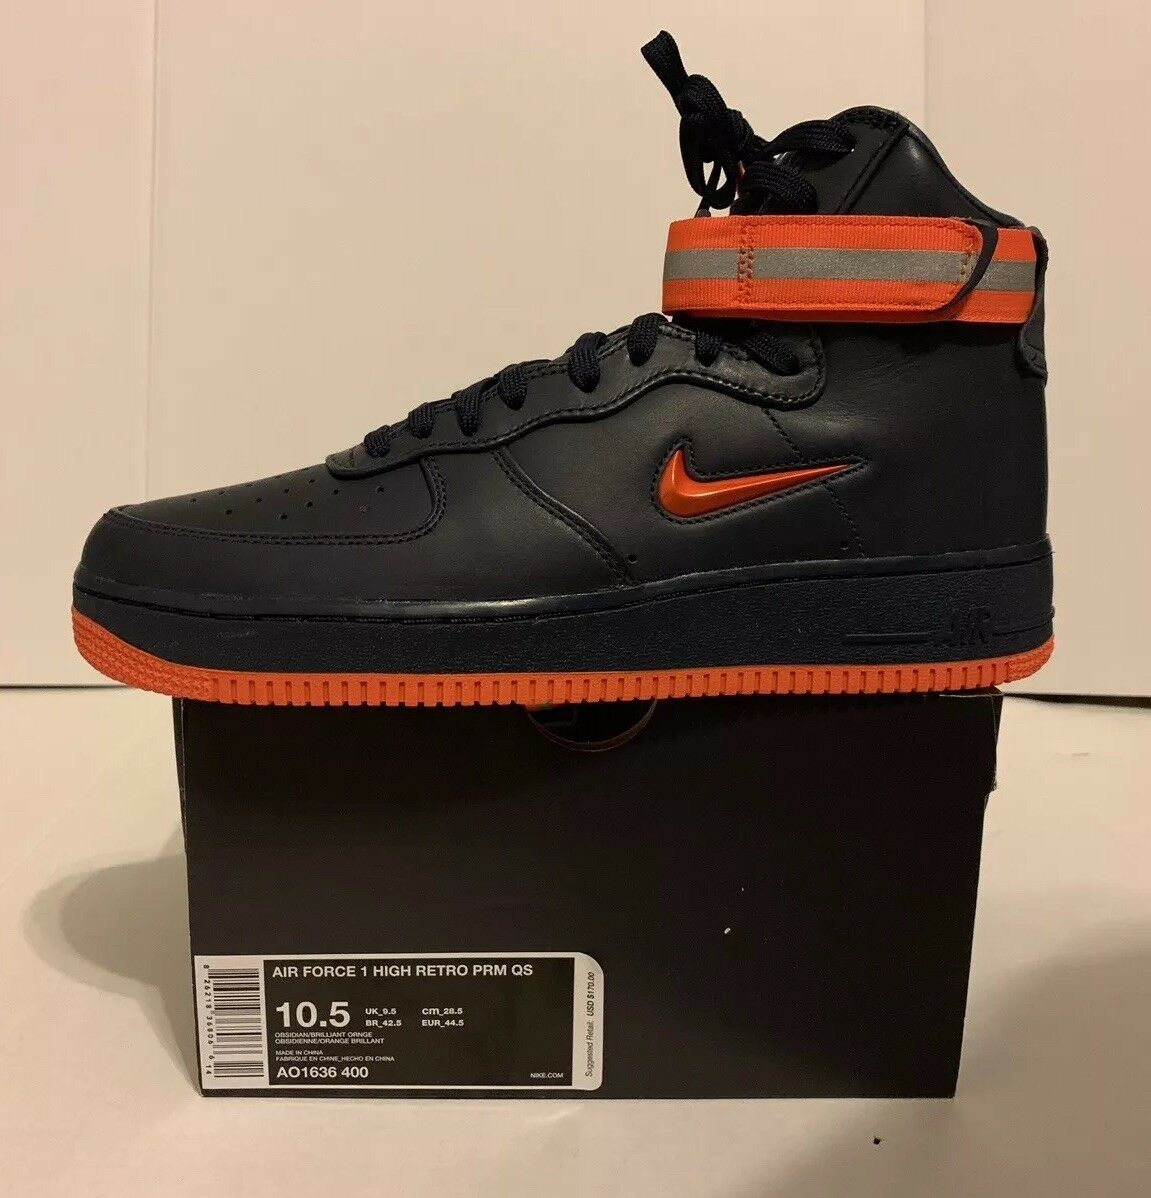 NIKE AIR FORCE 1 ONE ONE ONE HIGH RETRO PRM QS FDNY NYC AO1636-400 SZ 10.5 0579a2